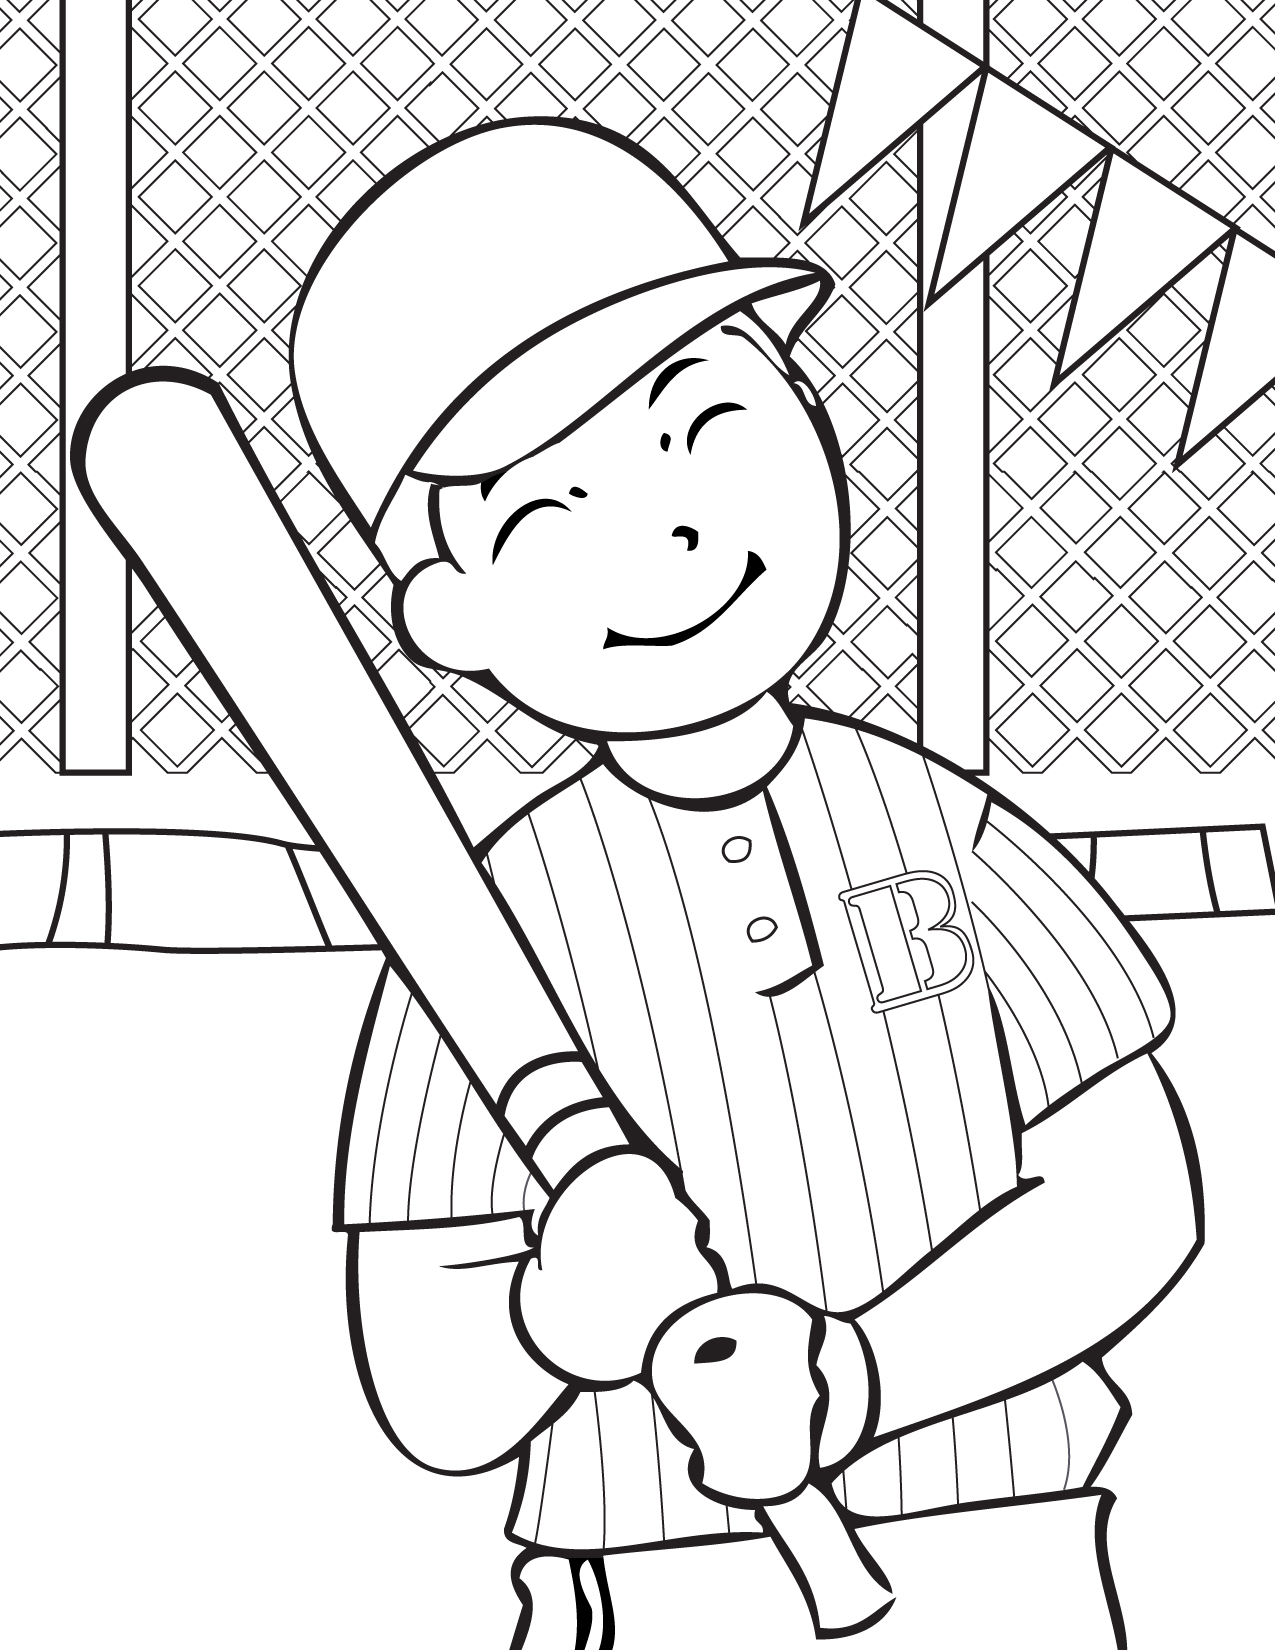 free baseball coloring pages for kids - Free Printable Coloring Pages